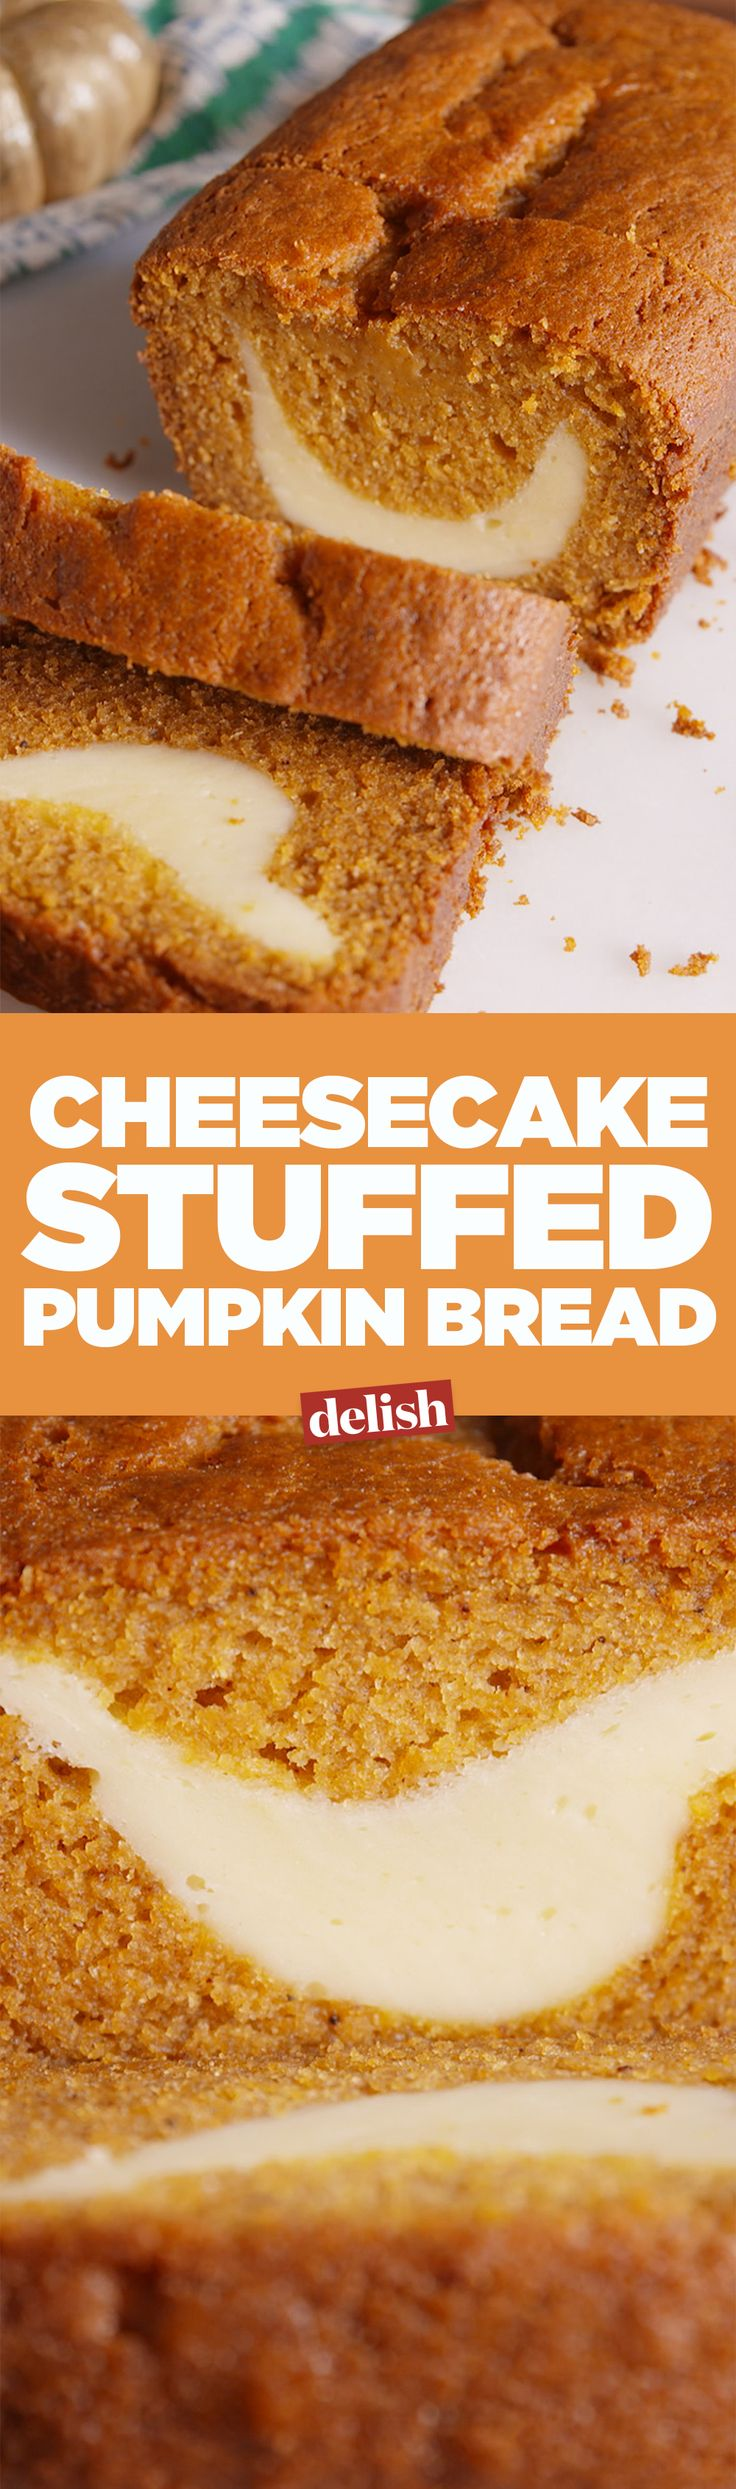 It's all about the swirl in this cheesecake-stuffed pumpkin bread. Get the recipe on Delish.com.